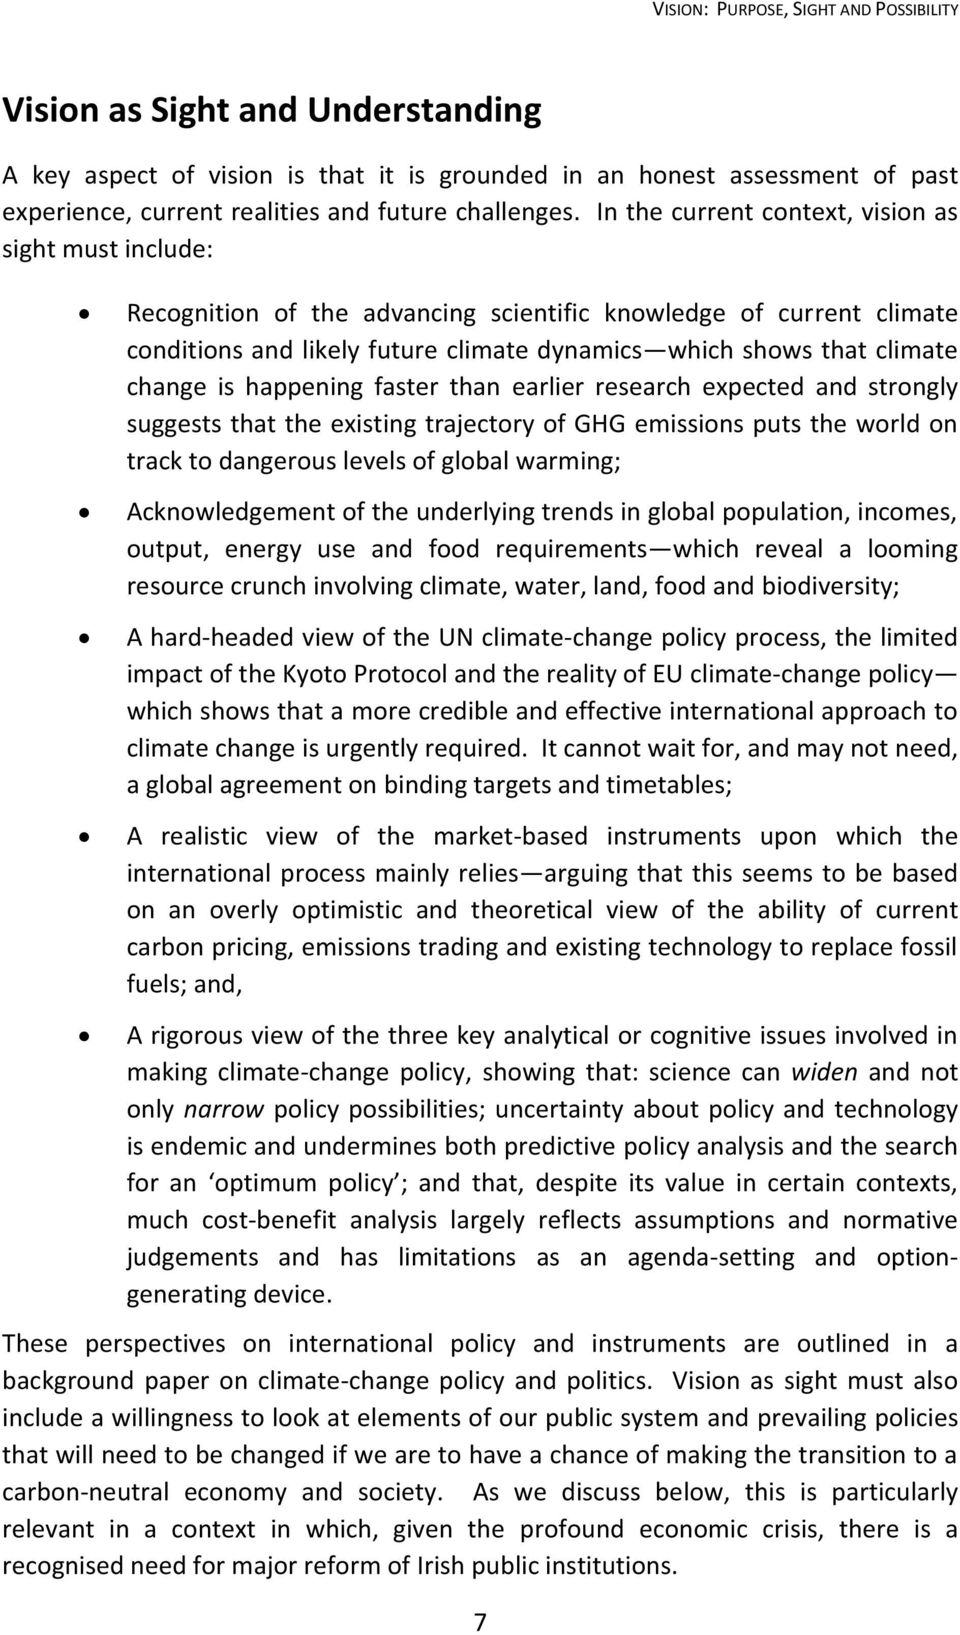 In the current context, vision as sight must include: Recognition of the advancing scientific knowledge of current climate conditions and likely future climate dynamics which shows that climate